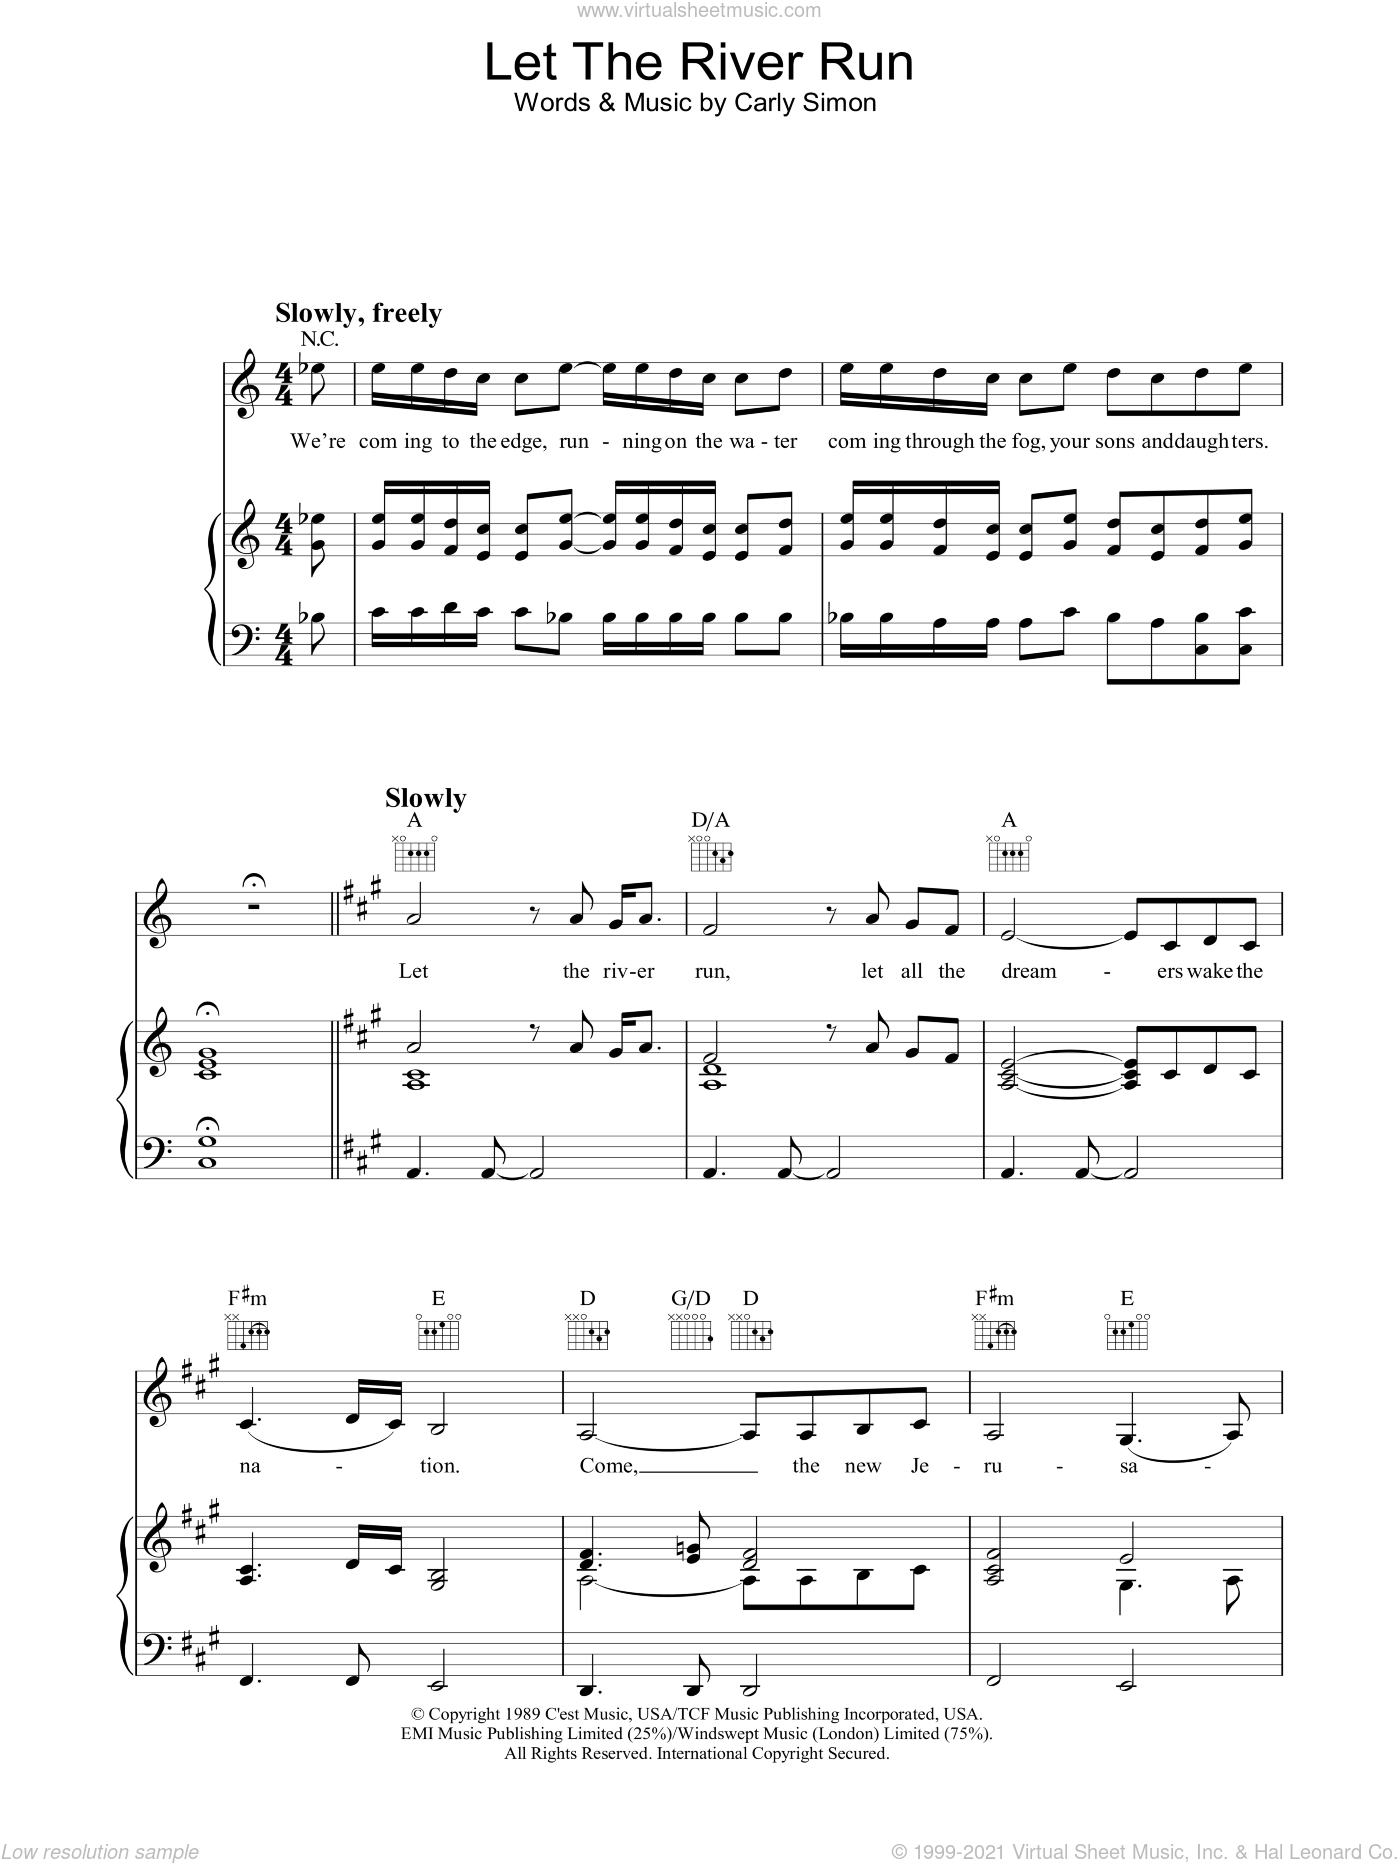 Let The River Run sheet music for voice, piano or guitar by Carly Simon. Score Image Preview.